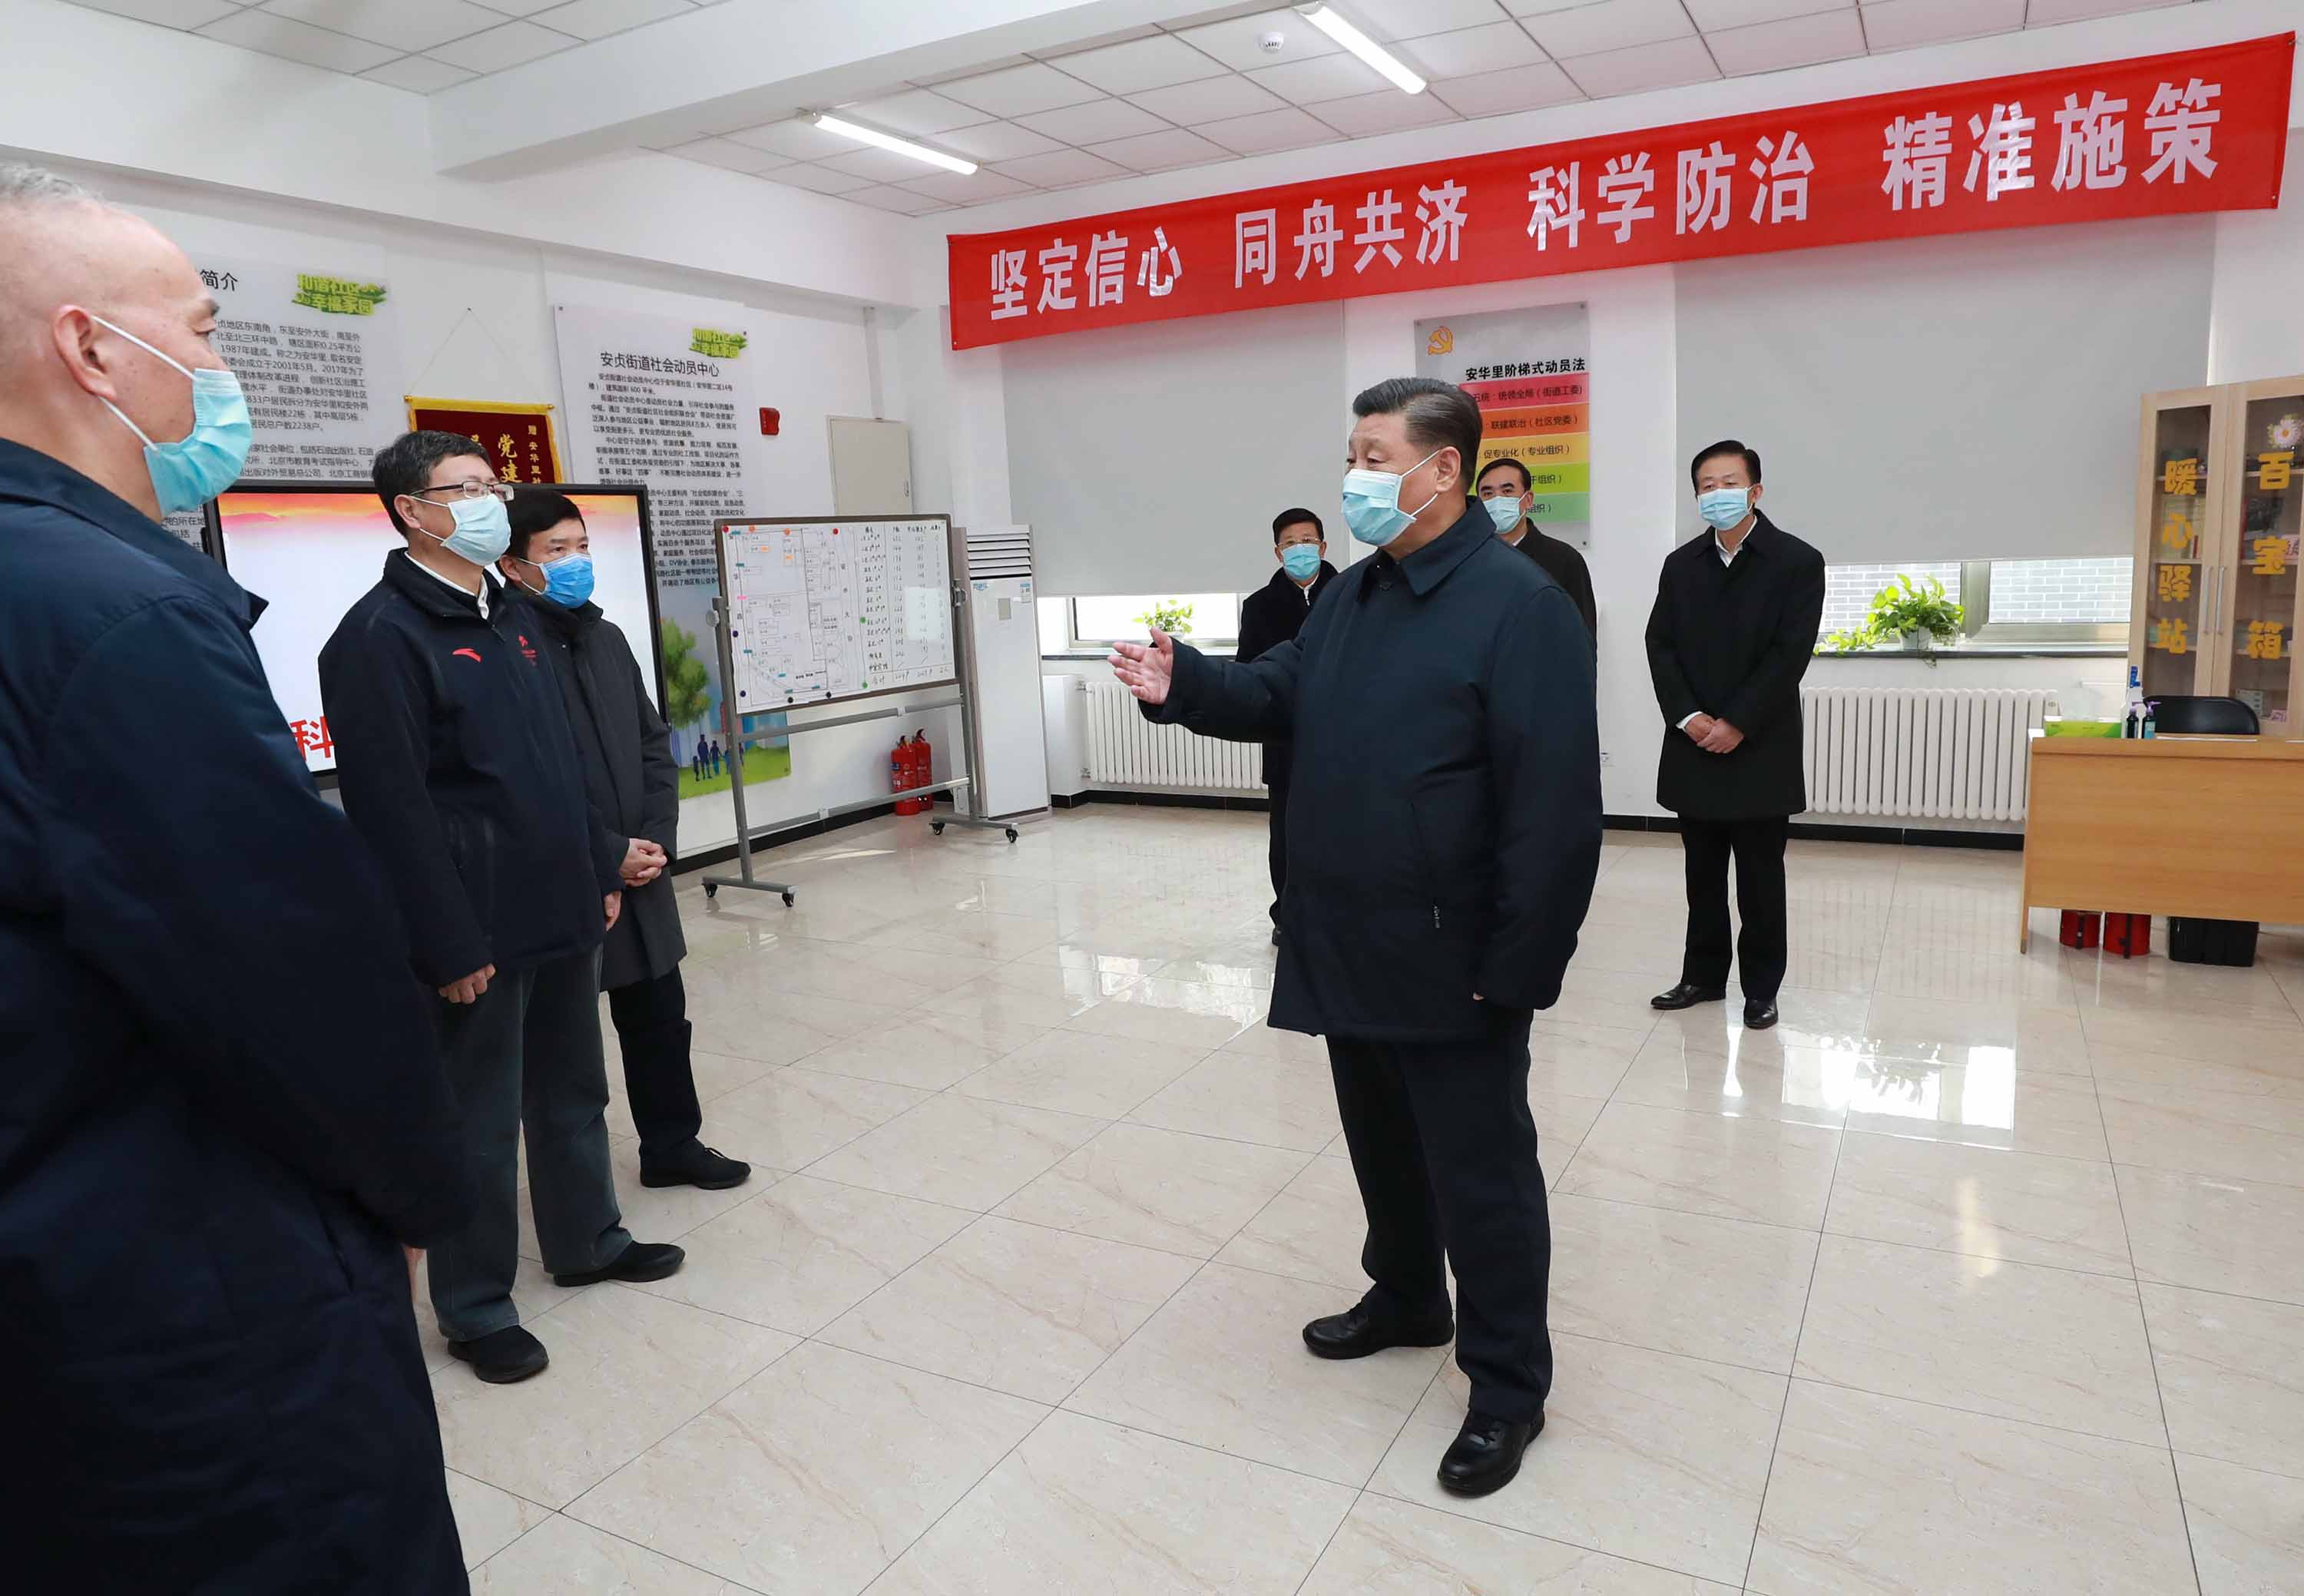 Chinese President Xi Jinping visits a site for novel coronavirus prevention work in Beijing on February 10.